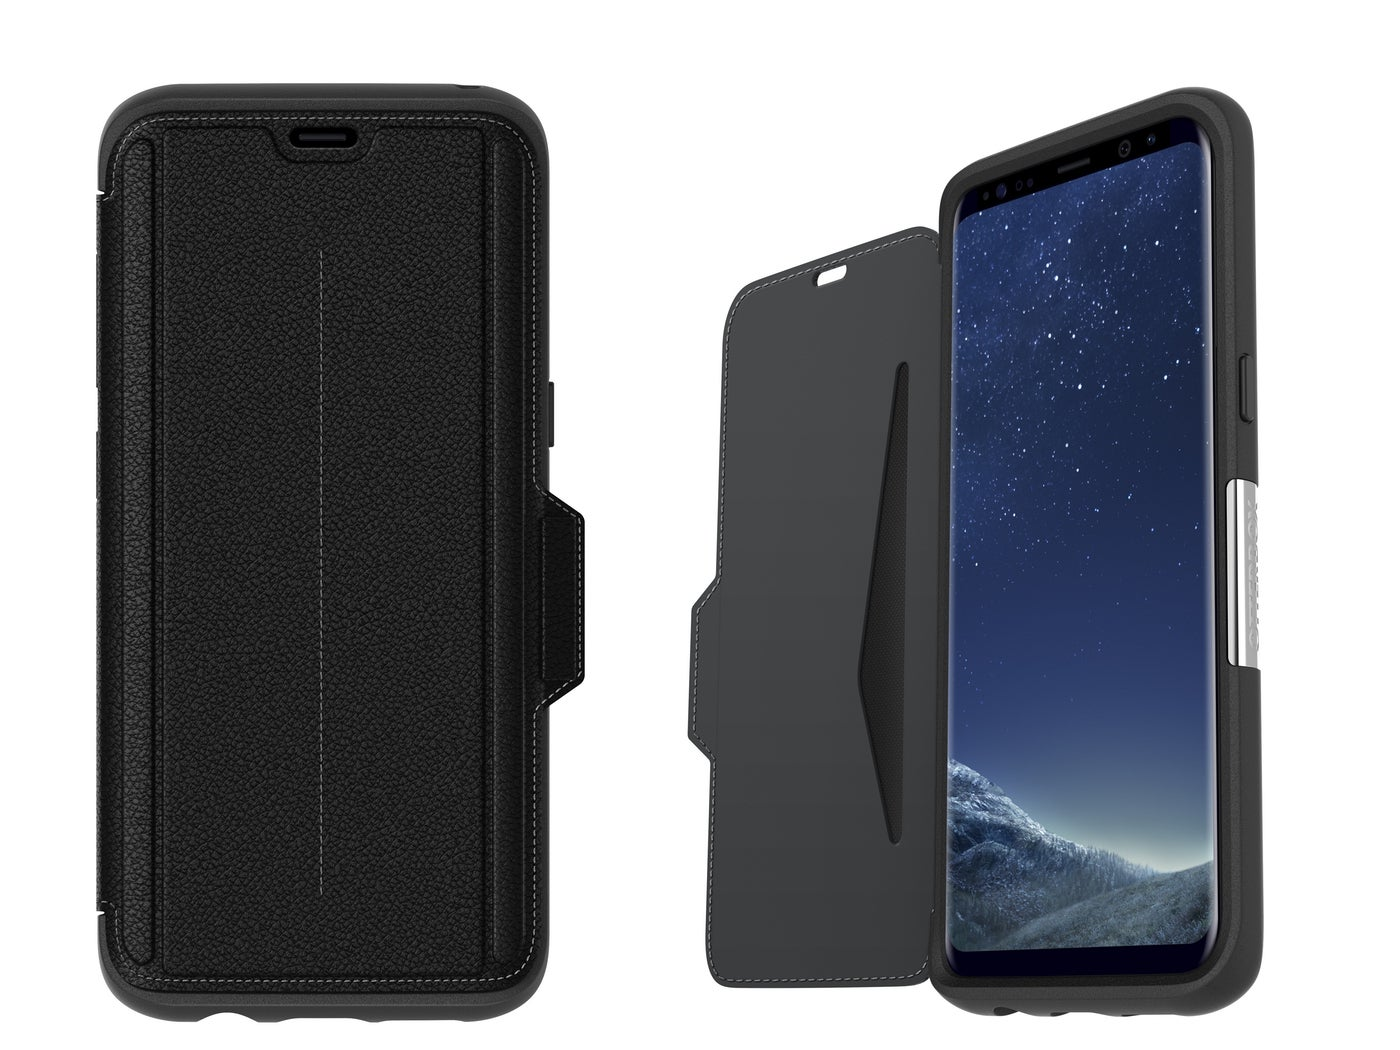 newest 80a5d 657c2 Galaxy S8 and S8+ case roundup: Protect your investment in style ...